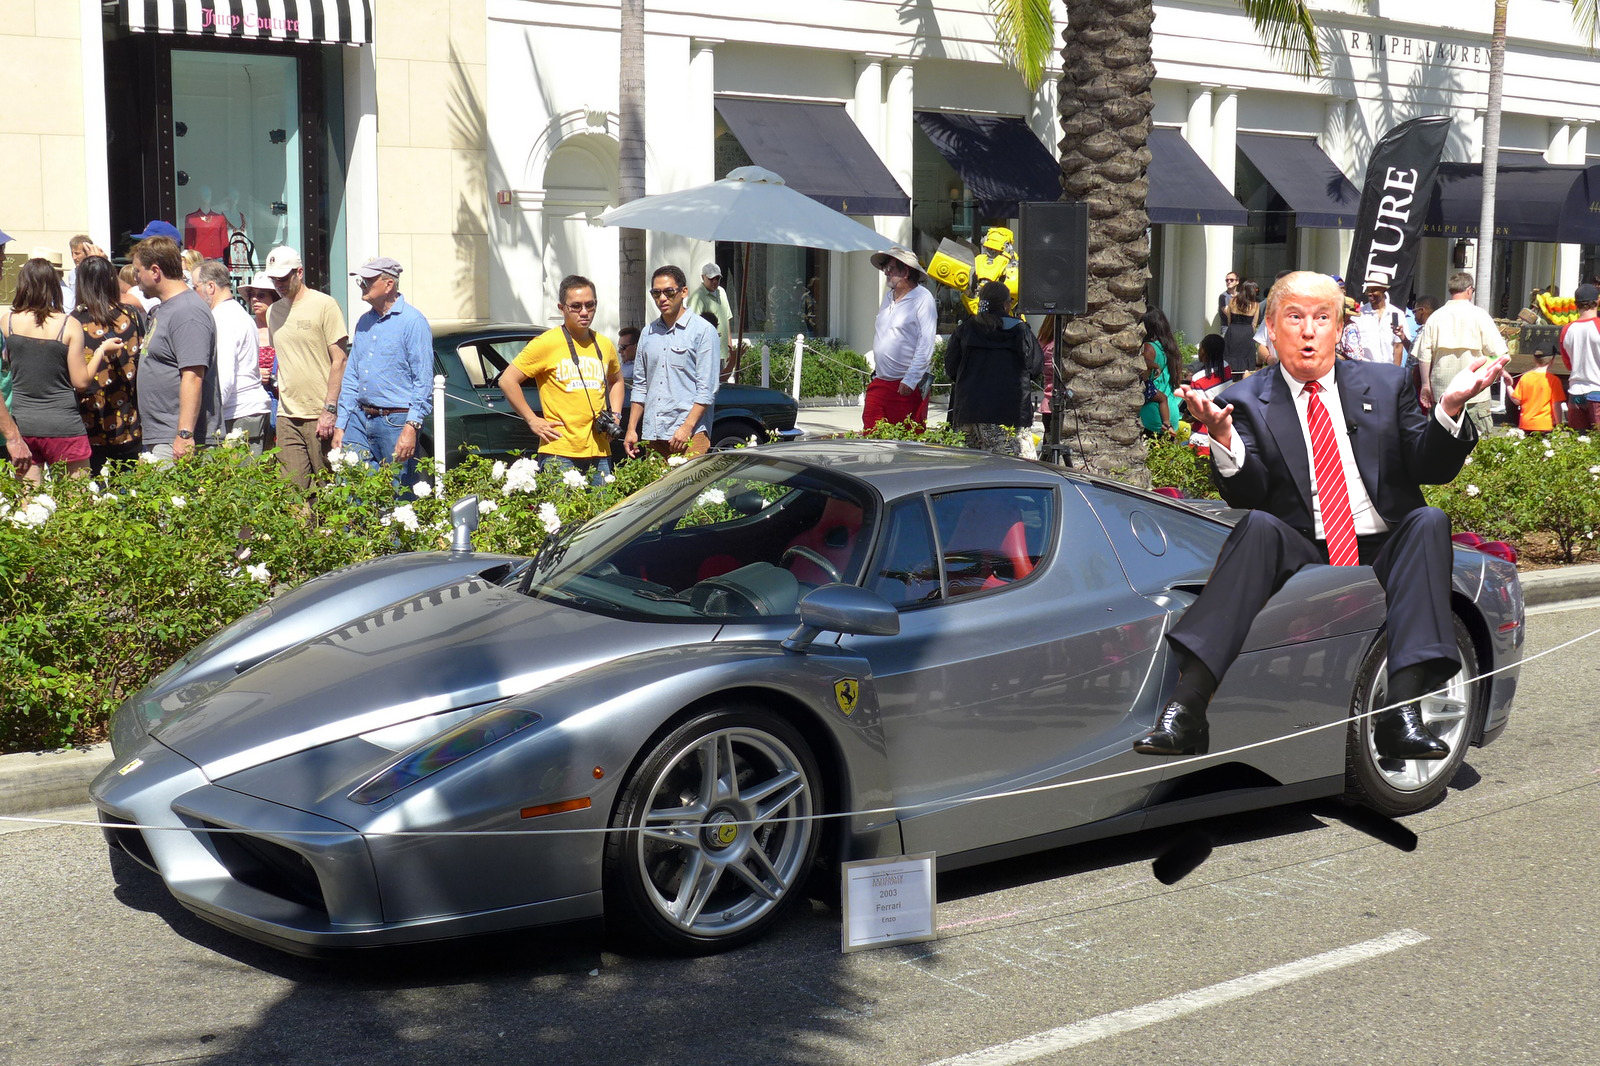 Images Leaked Of Donald Trump Leaning On Cars At Exotic